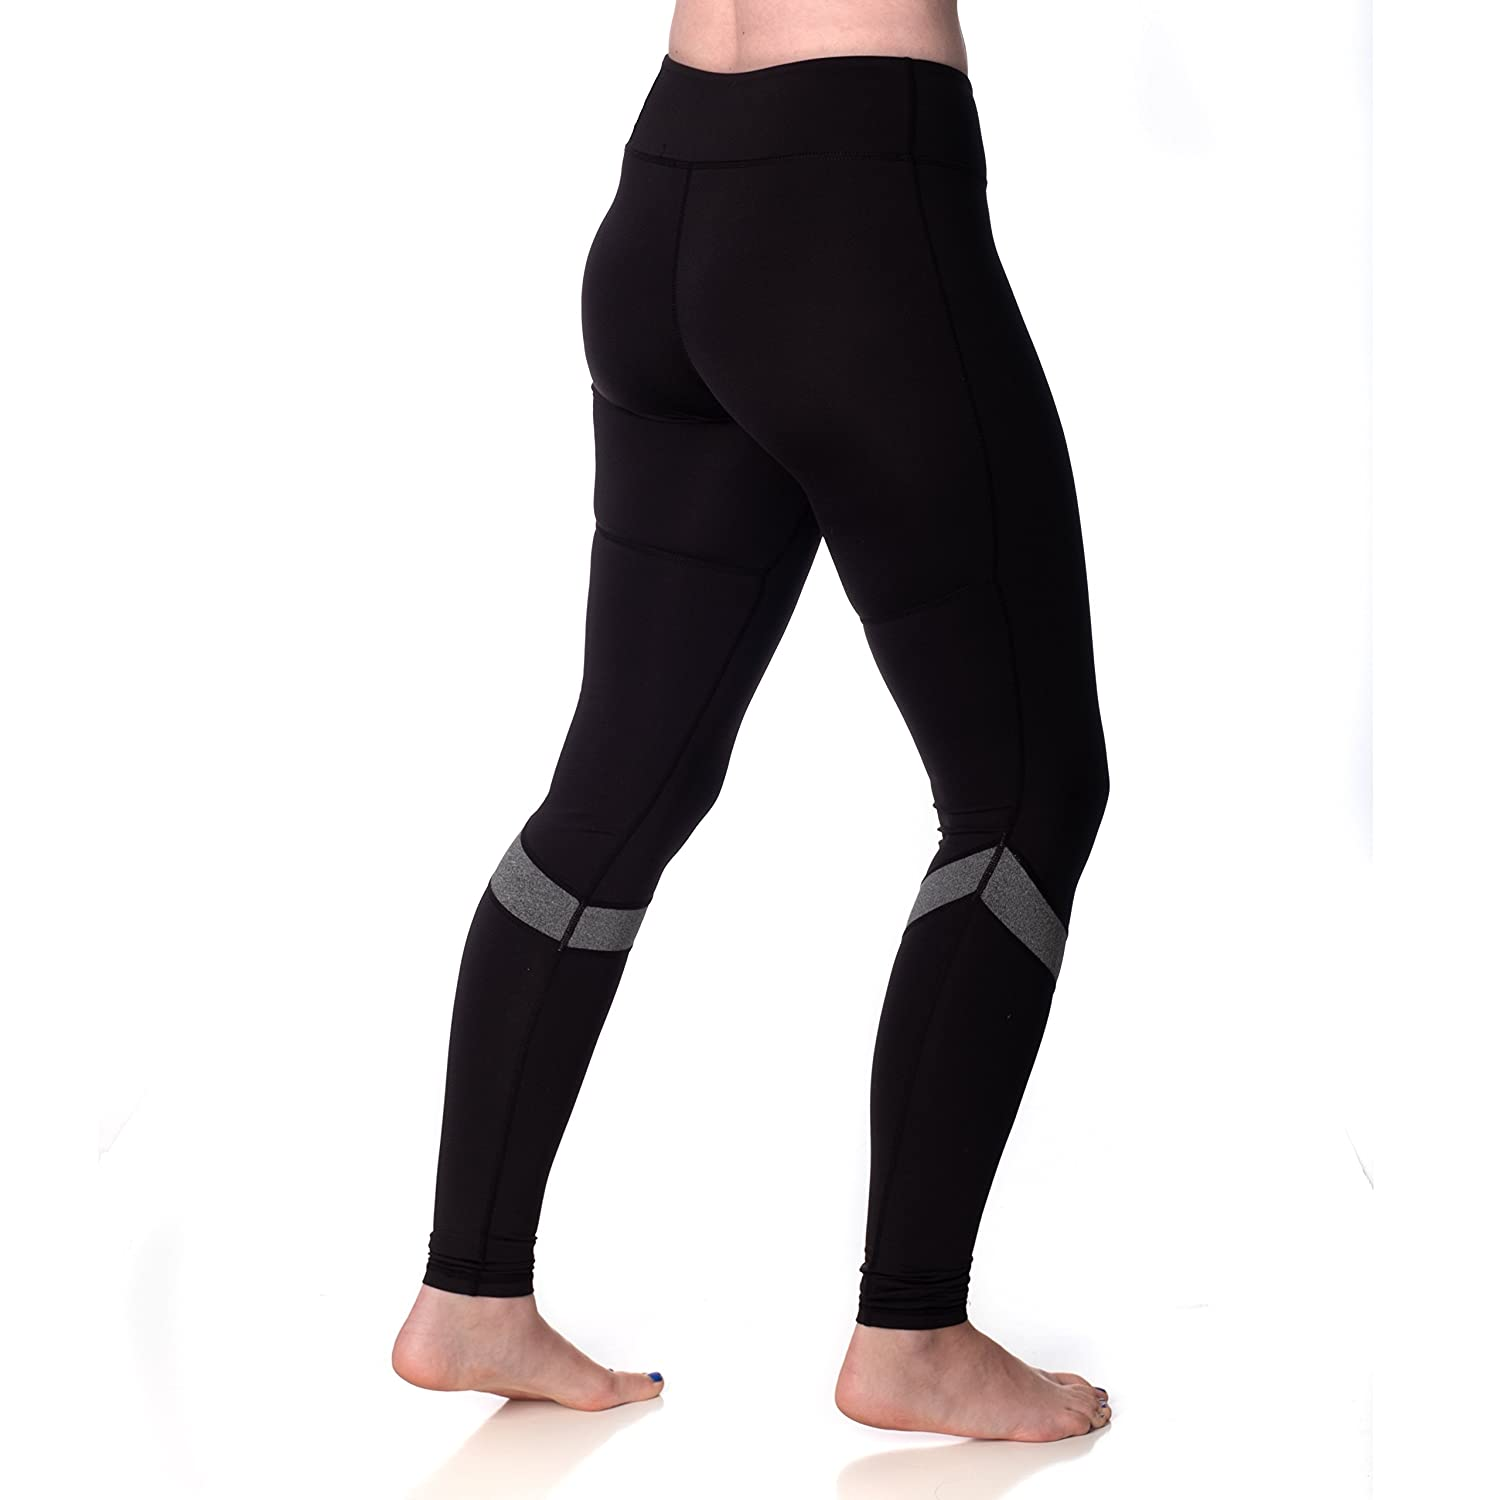 """d17686ea114f4b EXTRA LONG FOR TALL WOMEN - These pants are ideal for women 5'10"""" and up.  All sizes have 35"""" inseam. Model is 5'10"""" wearing size small tall. HIGH  QUALITY ..."""